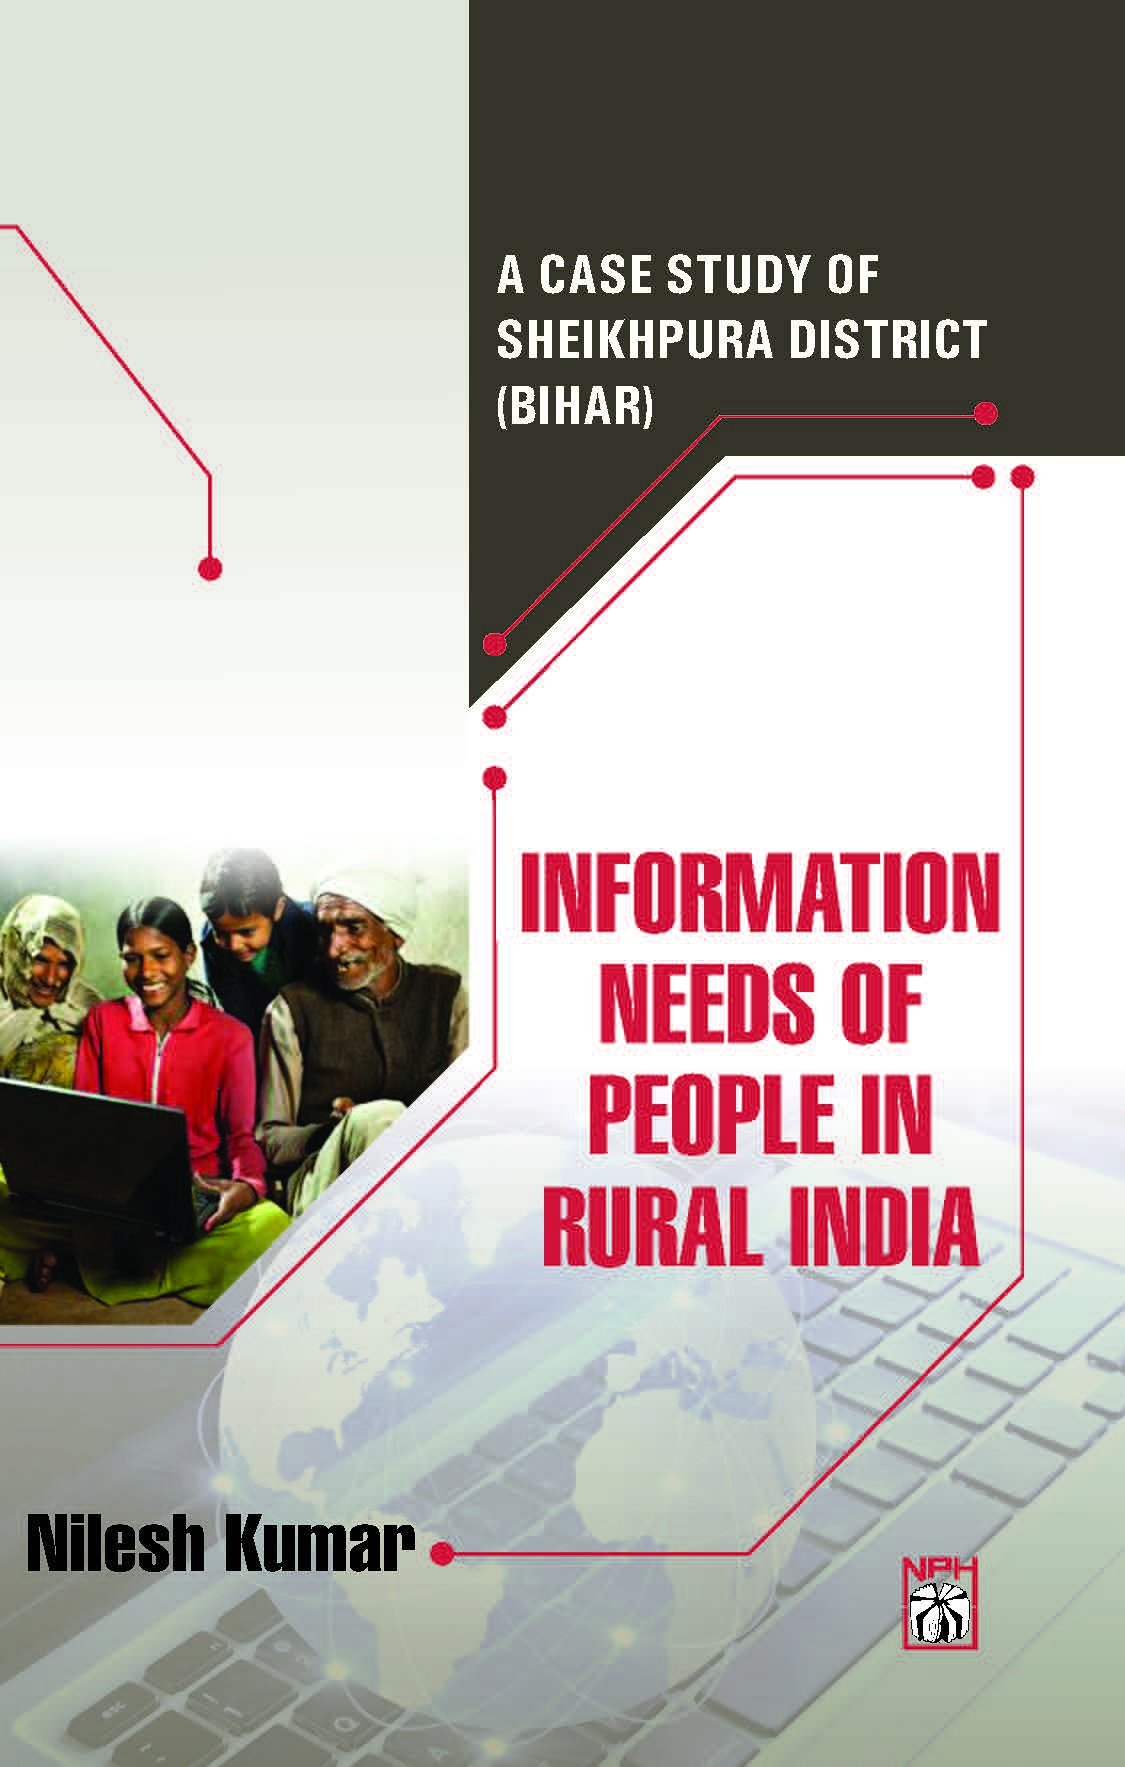 Information Need of People in Rural Indian